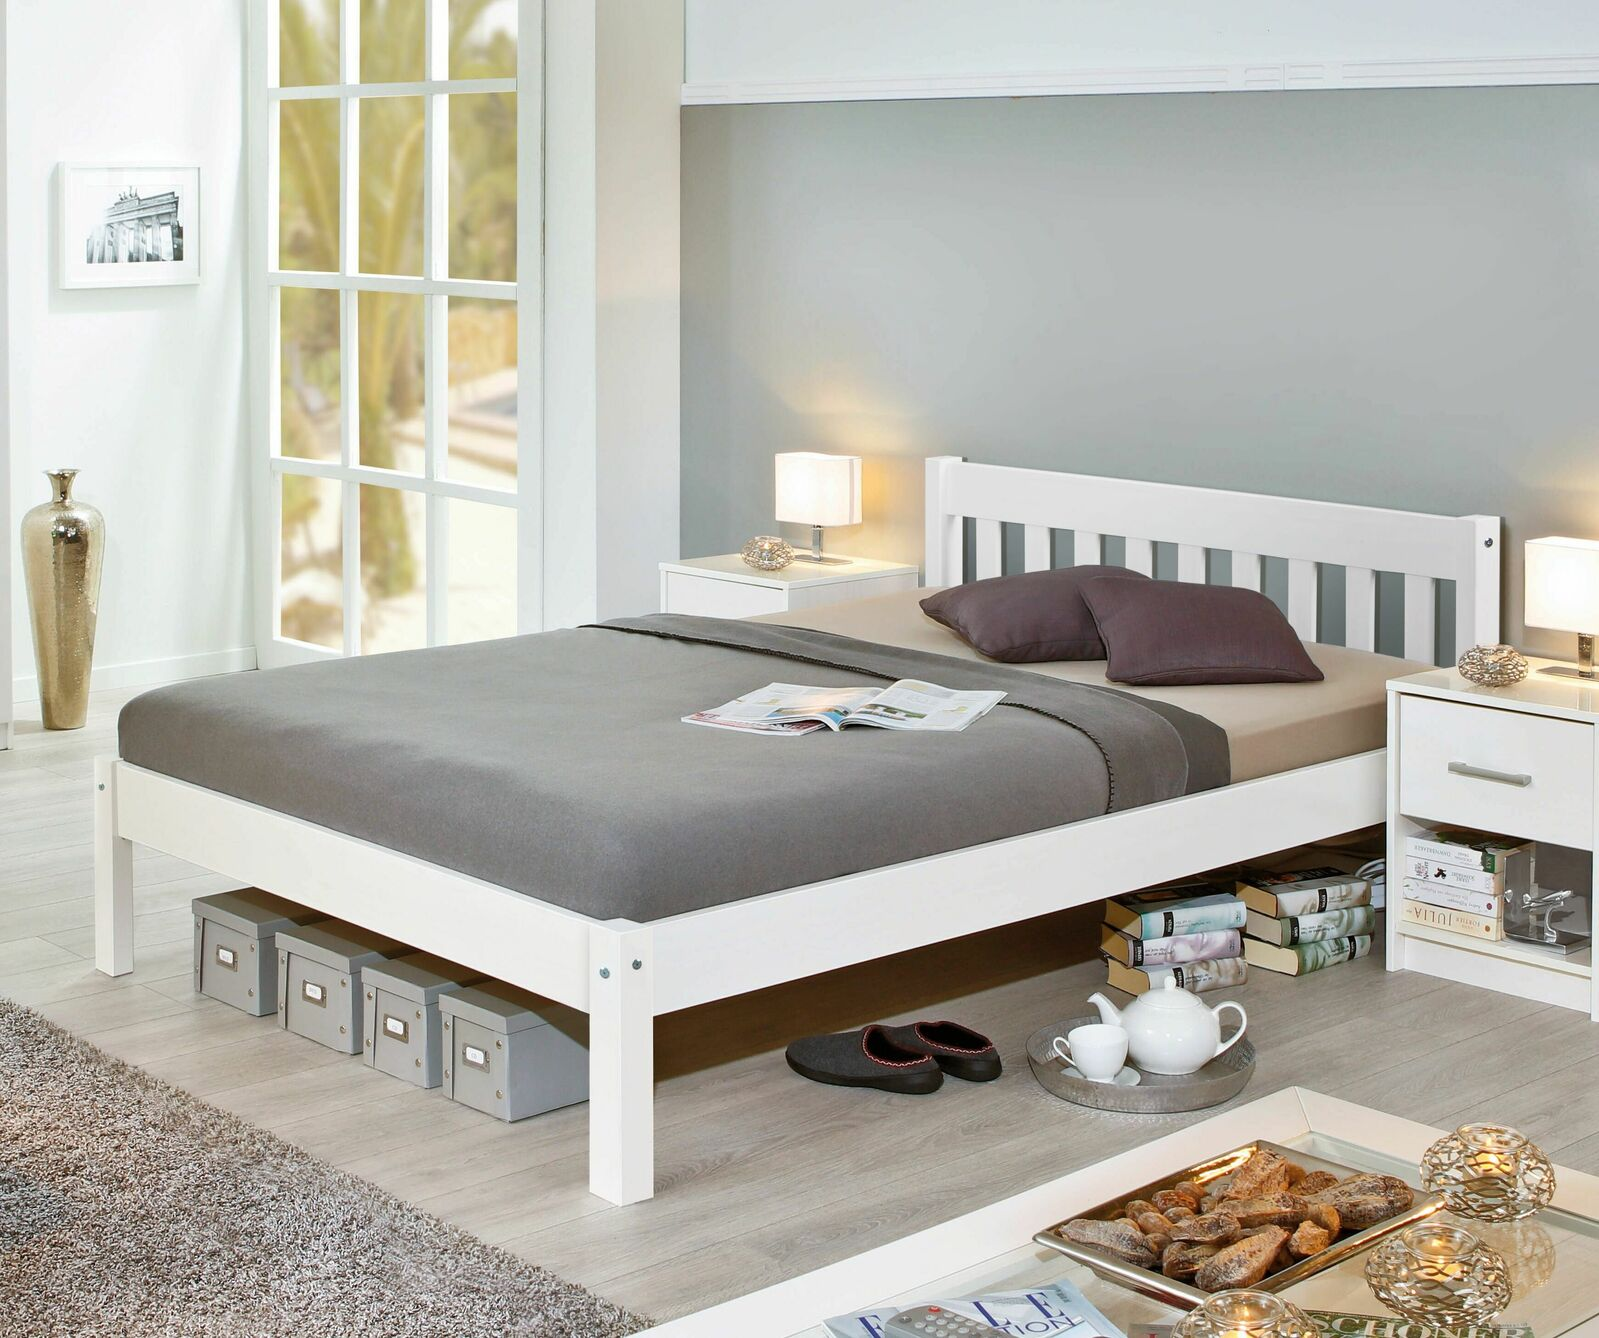 preiswertes bett aus wei er kiefer z b in 140x200 cm genf. Black Bedroom Furniture Sets. Home Design Ideas